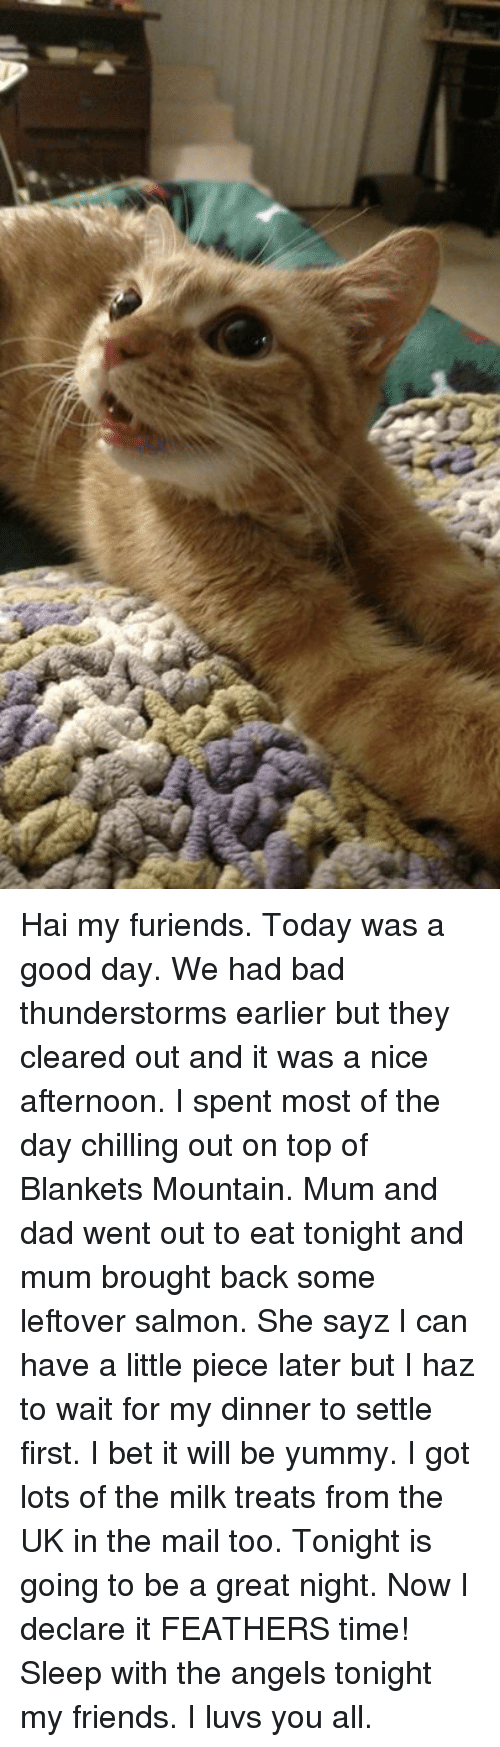 Thunderstorming: Hai my furiends. Today was a good day. We had bad thunderstorms earlier but they cleared out and it was a nice afternoon. I spent most of the day chilling out on top of Blankets Mountain. Mum and dad went out to eat tonight and mum brought back some leftover salmon. She sayz I can have a little piece later but I haz to wait for my dinner to settle first. I bet it will be yummy. I got lots of the milk treats from the UK in the mail too. Tonight is going to be a great night. Now I declare it FEATHERS time! Sleep with the angels tonight my friends. I luvs you all.